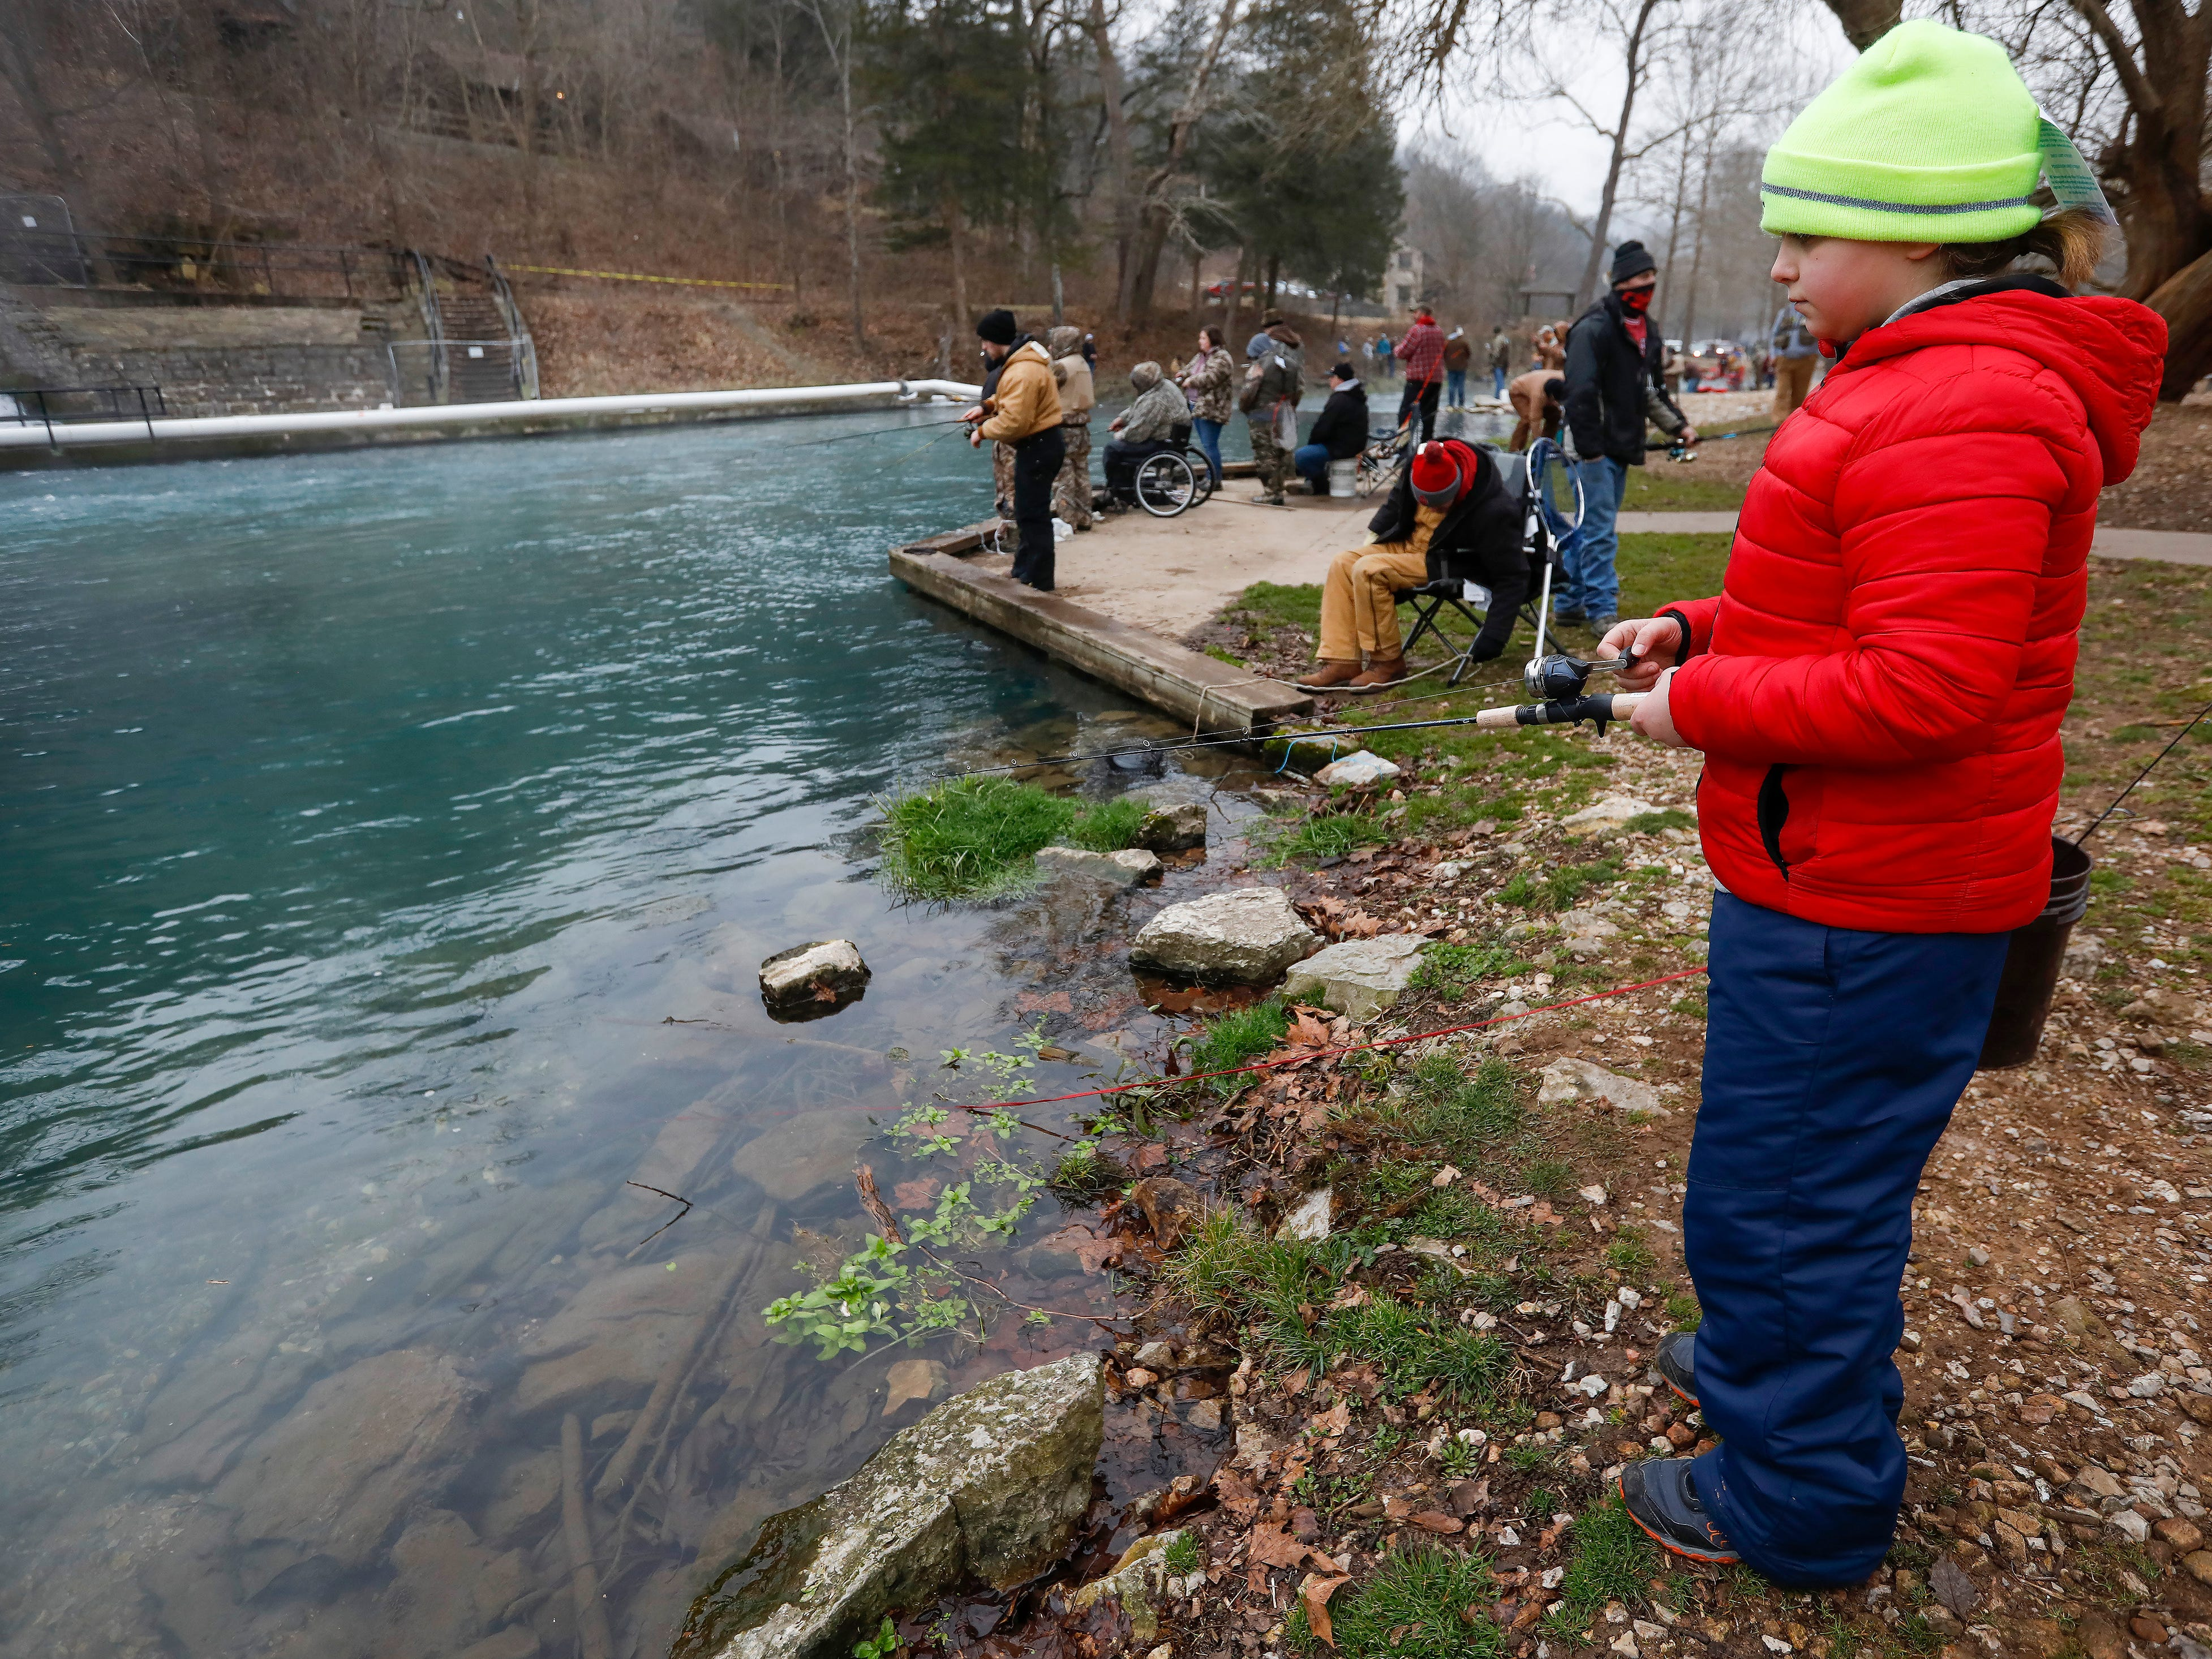 Allison Shoemaker, 9, waits for a fish to strike her lure on opening day of trout season at Roaring River State Park on Friday, Mar. 1, 2019.